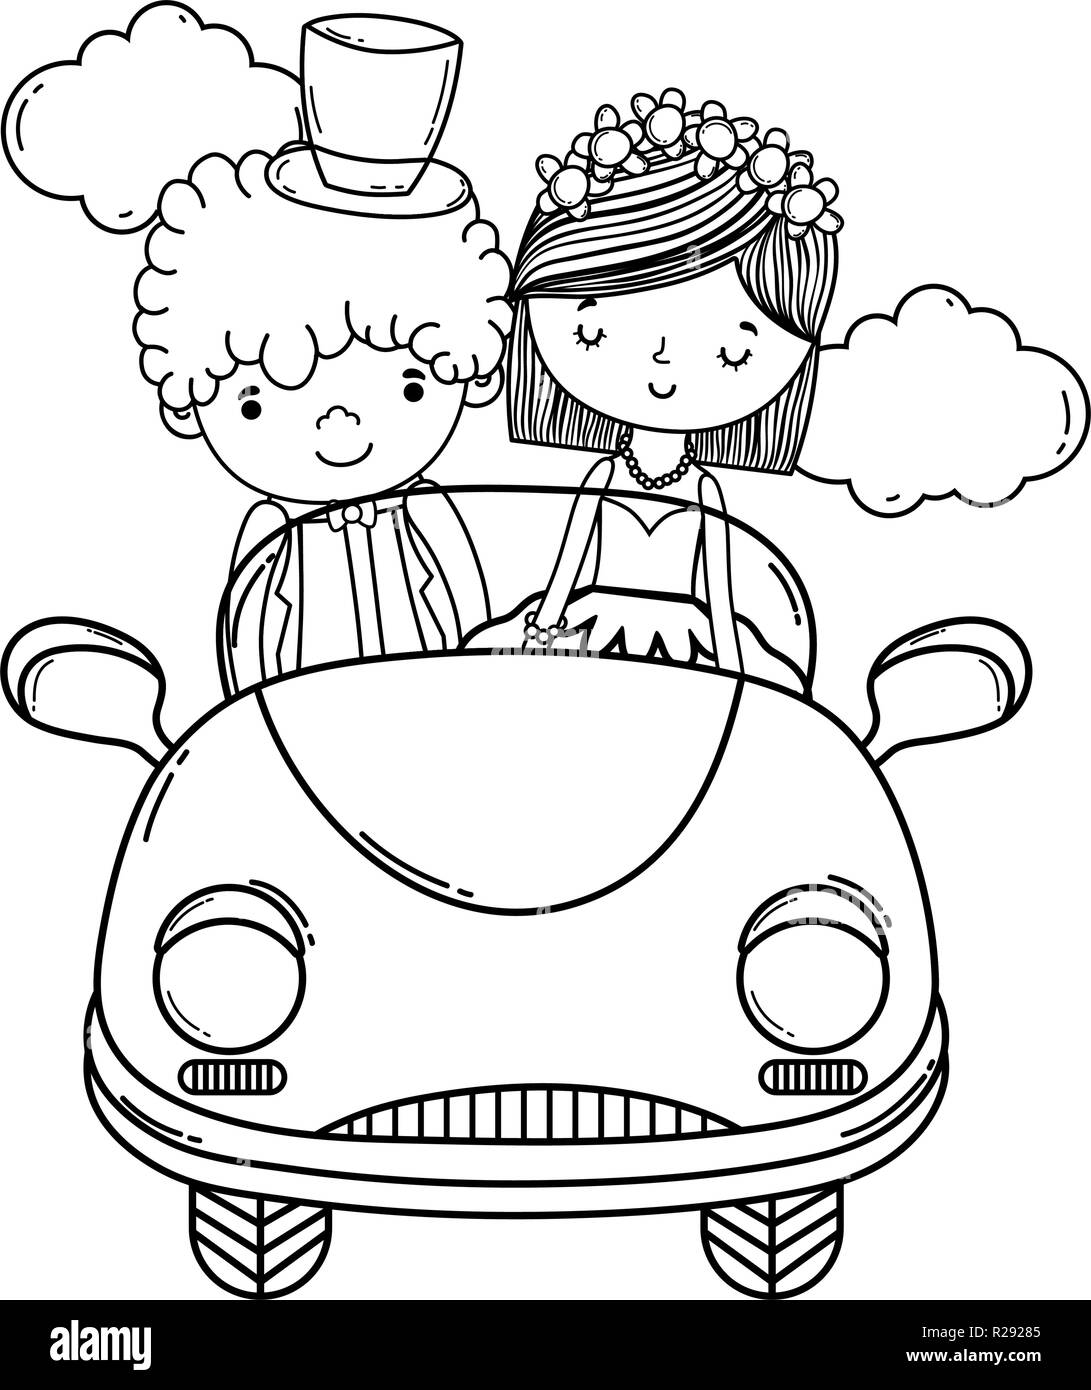 just married car bride groom black and white stock photos images British Cars 1950s wedding couple and car cute cartoon black and white stock image